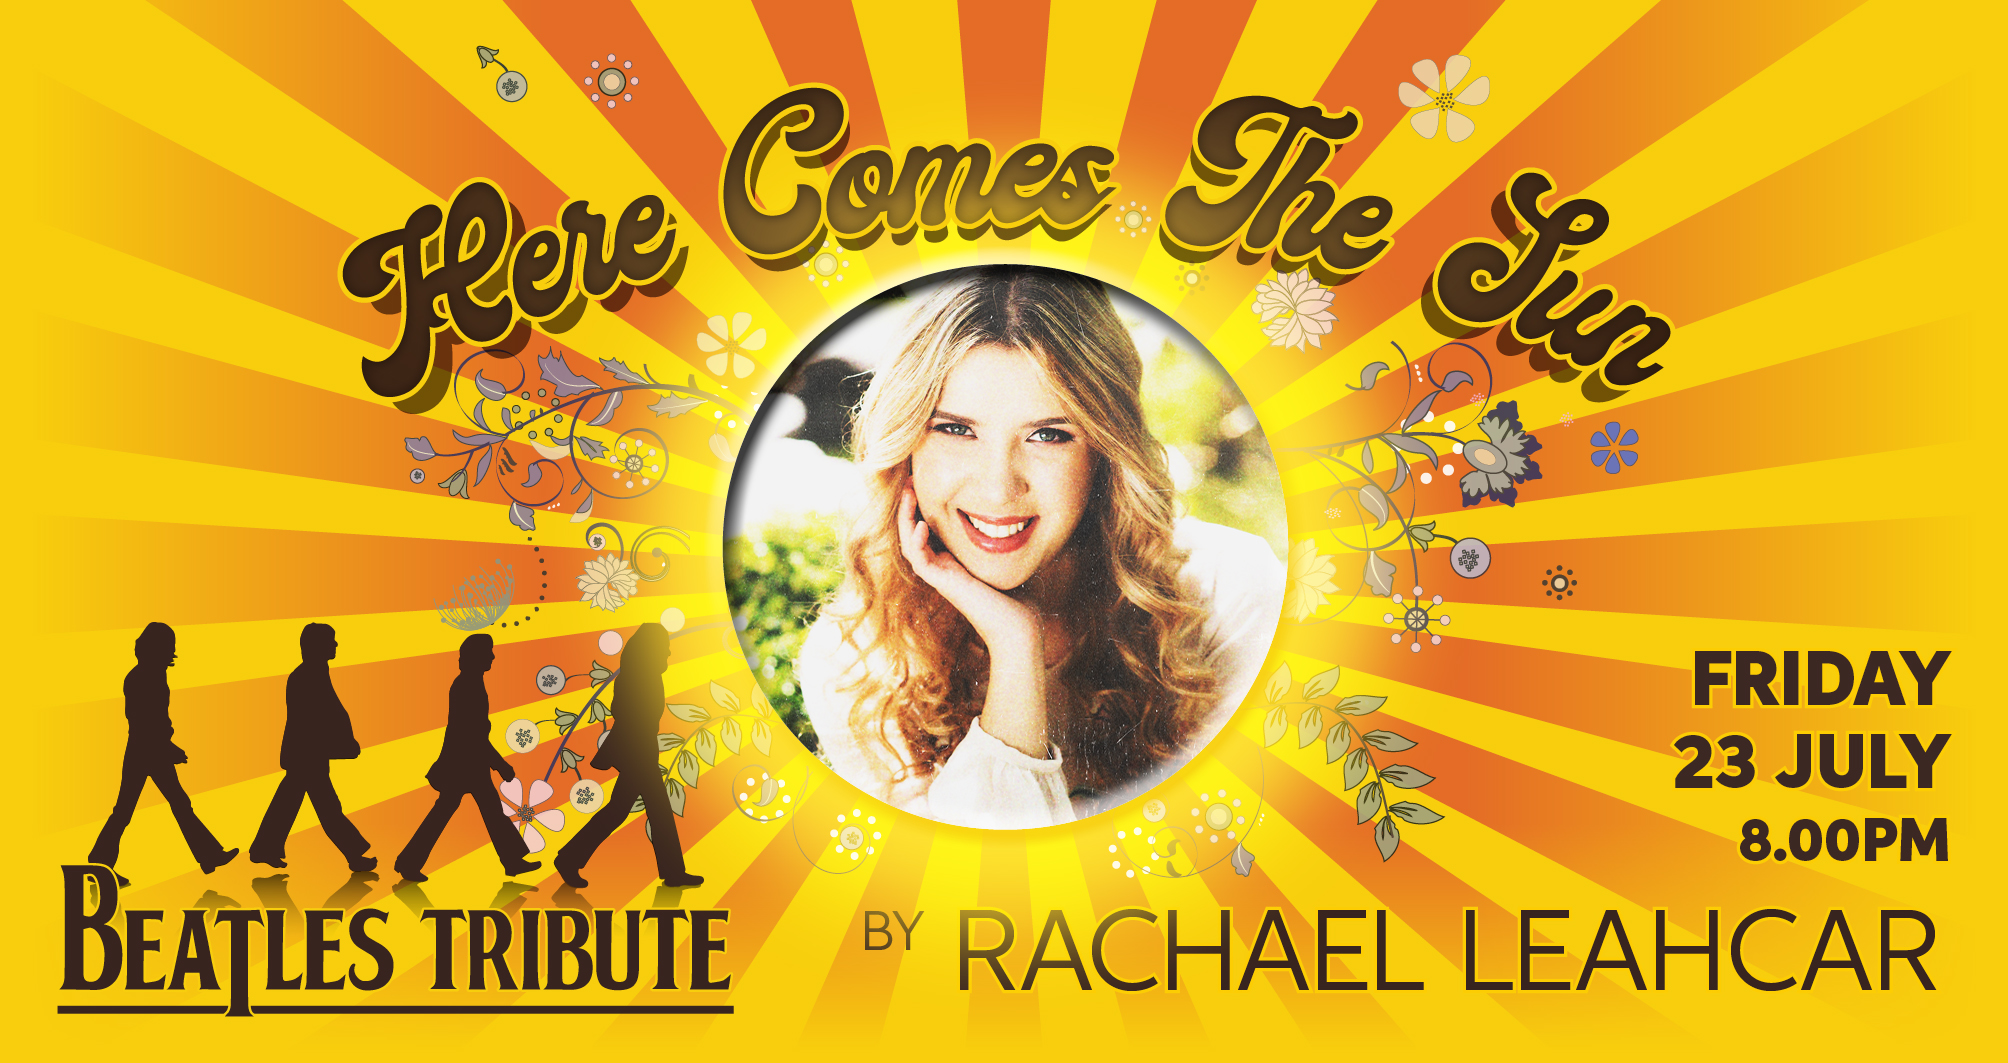 Here Comes The Sun Beatles Tribute by Rachael Leahcar